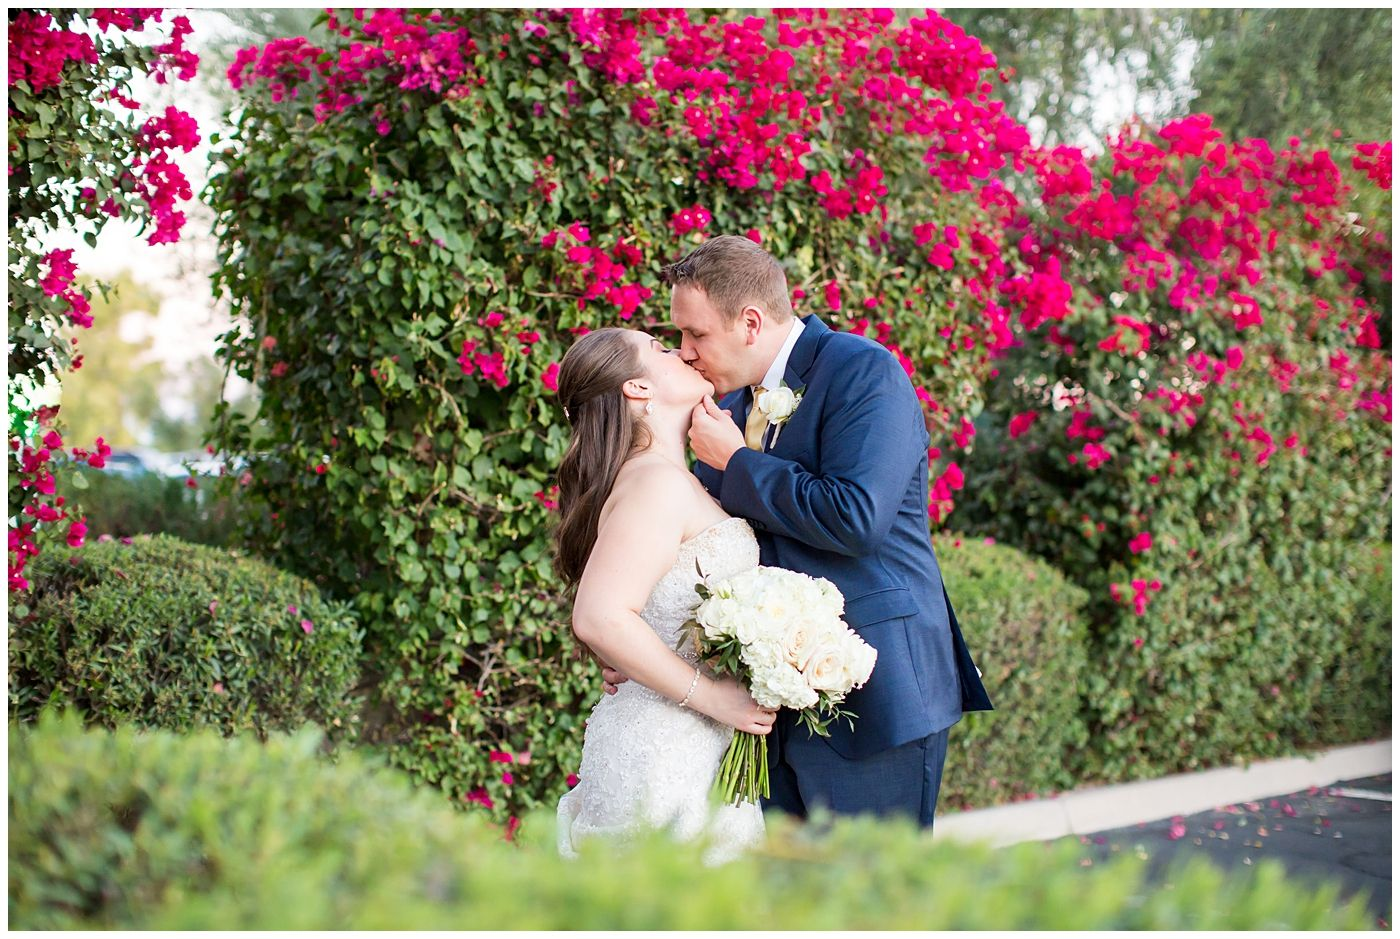 Classic romantic wedding at mccormick ranch bride u groom